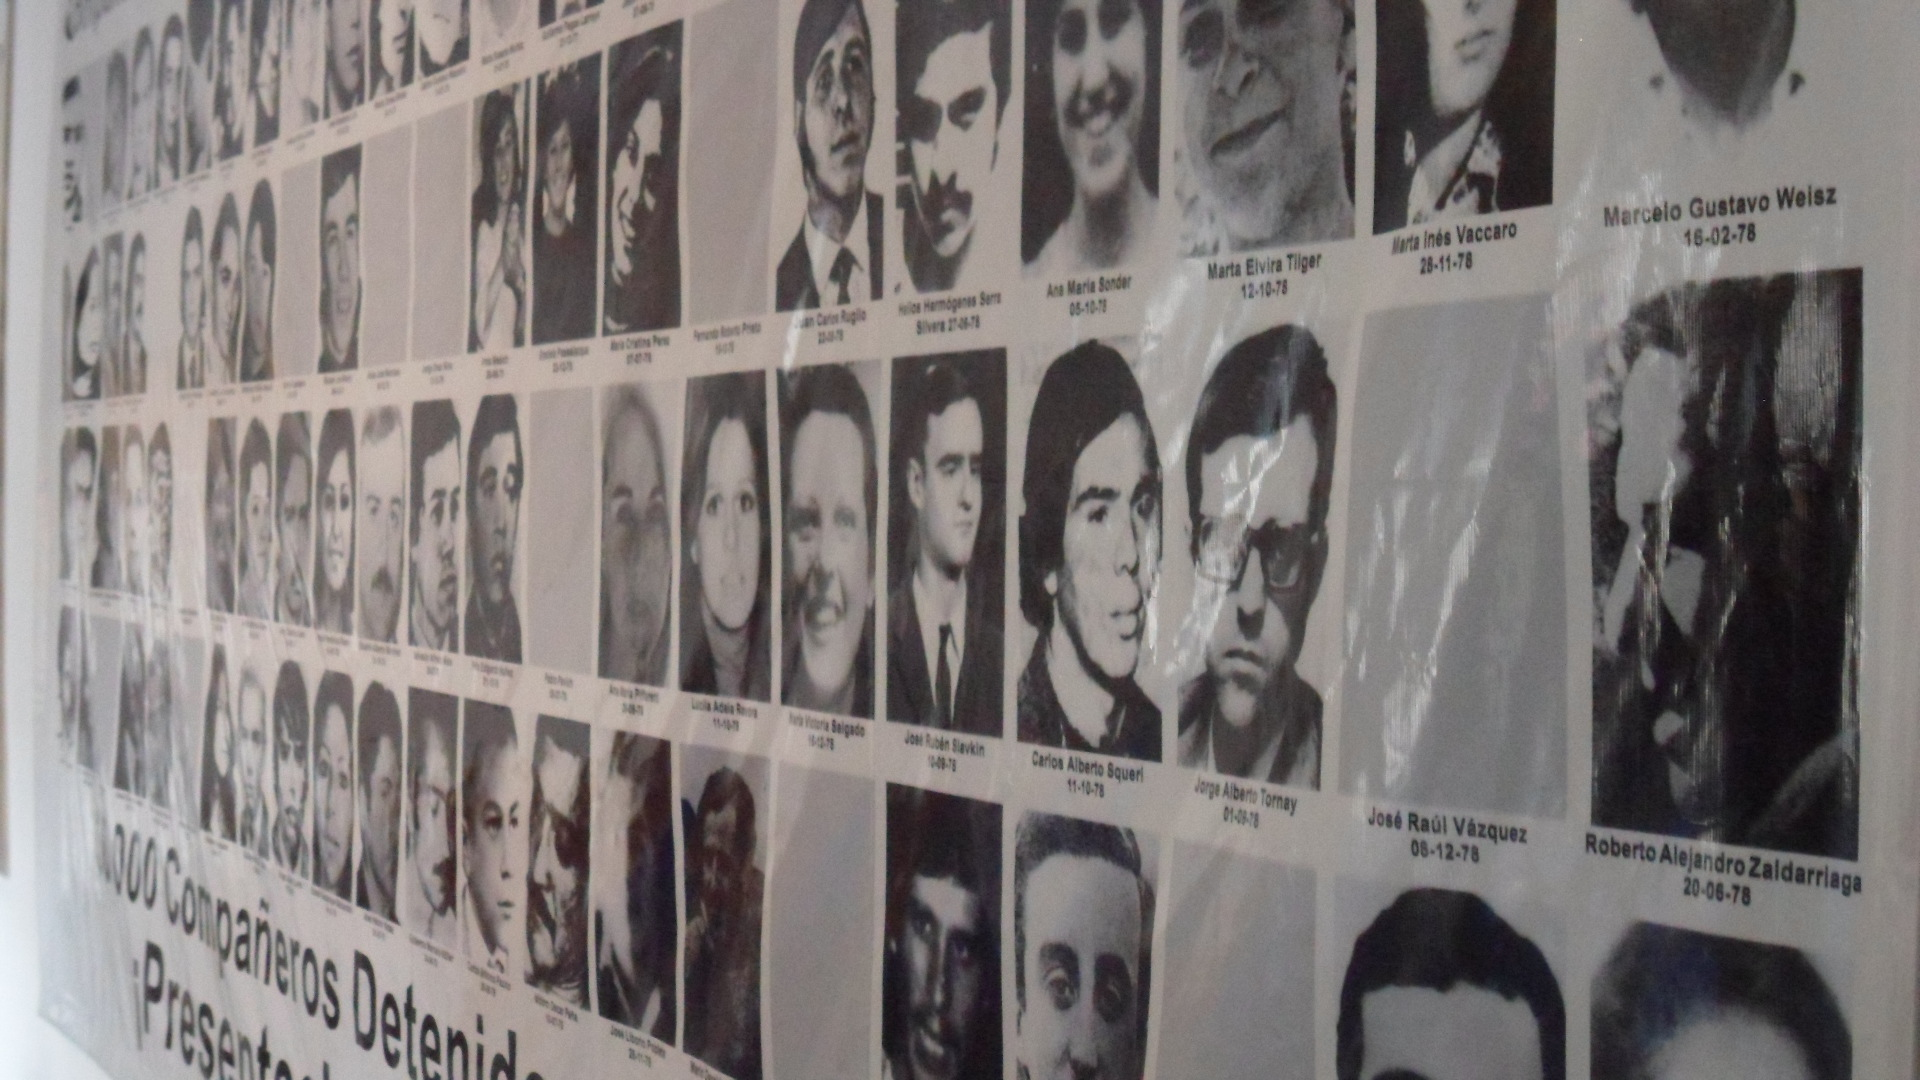 Preserving Memory: Military Dictatorship and Atrocities in Argentina